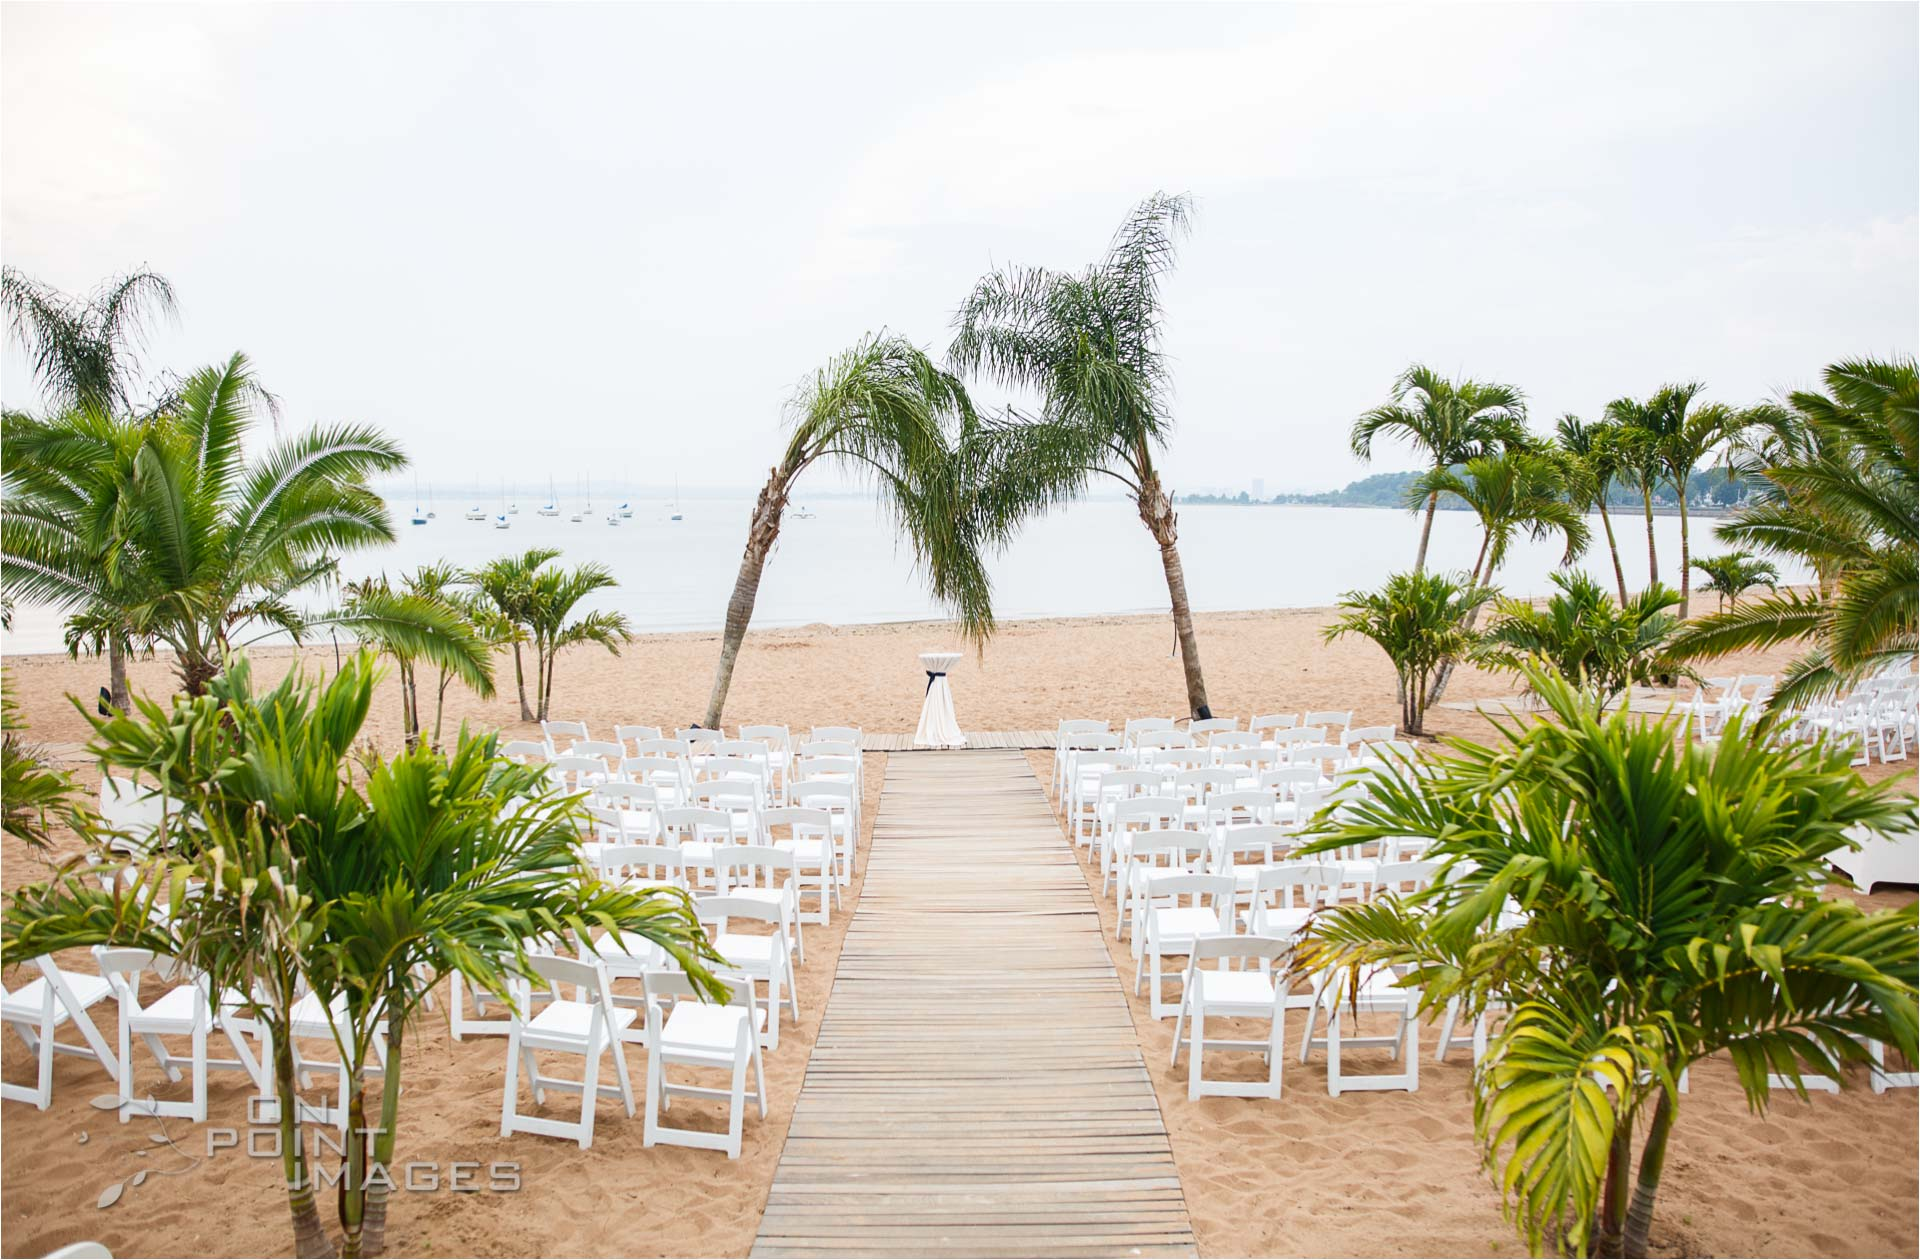 Anthonys-Ocean-View-Wedding-Photographs-11.jpg